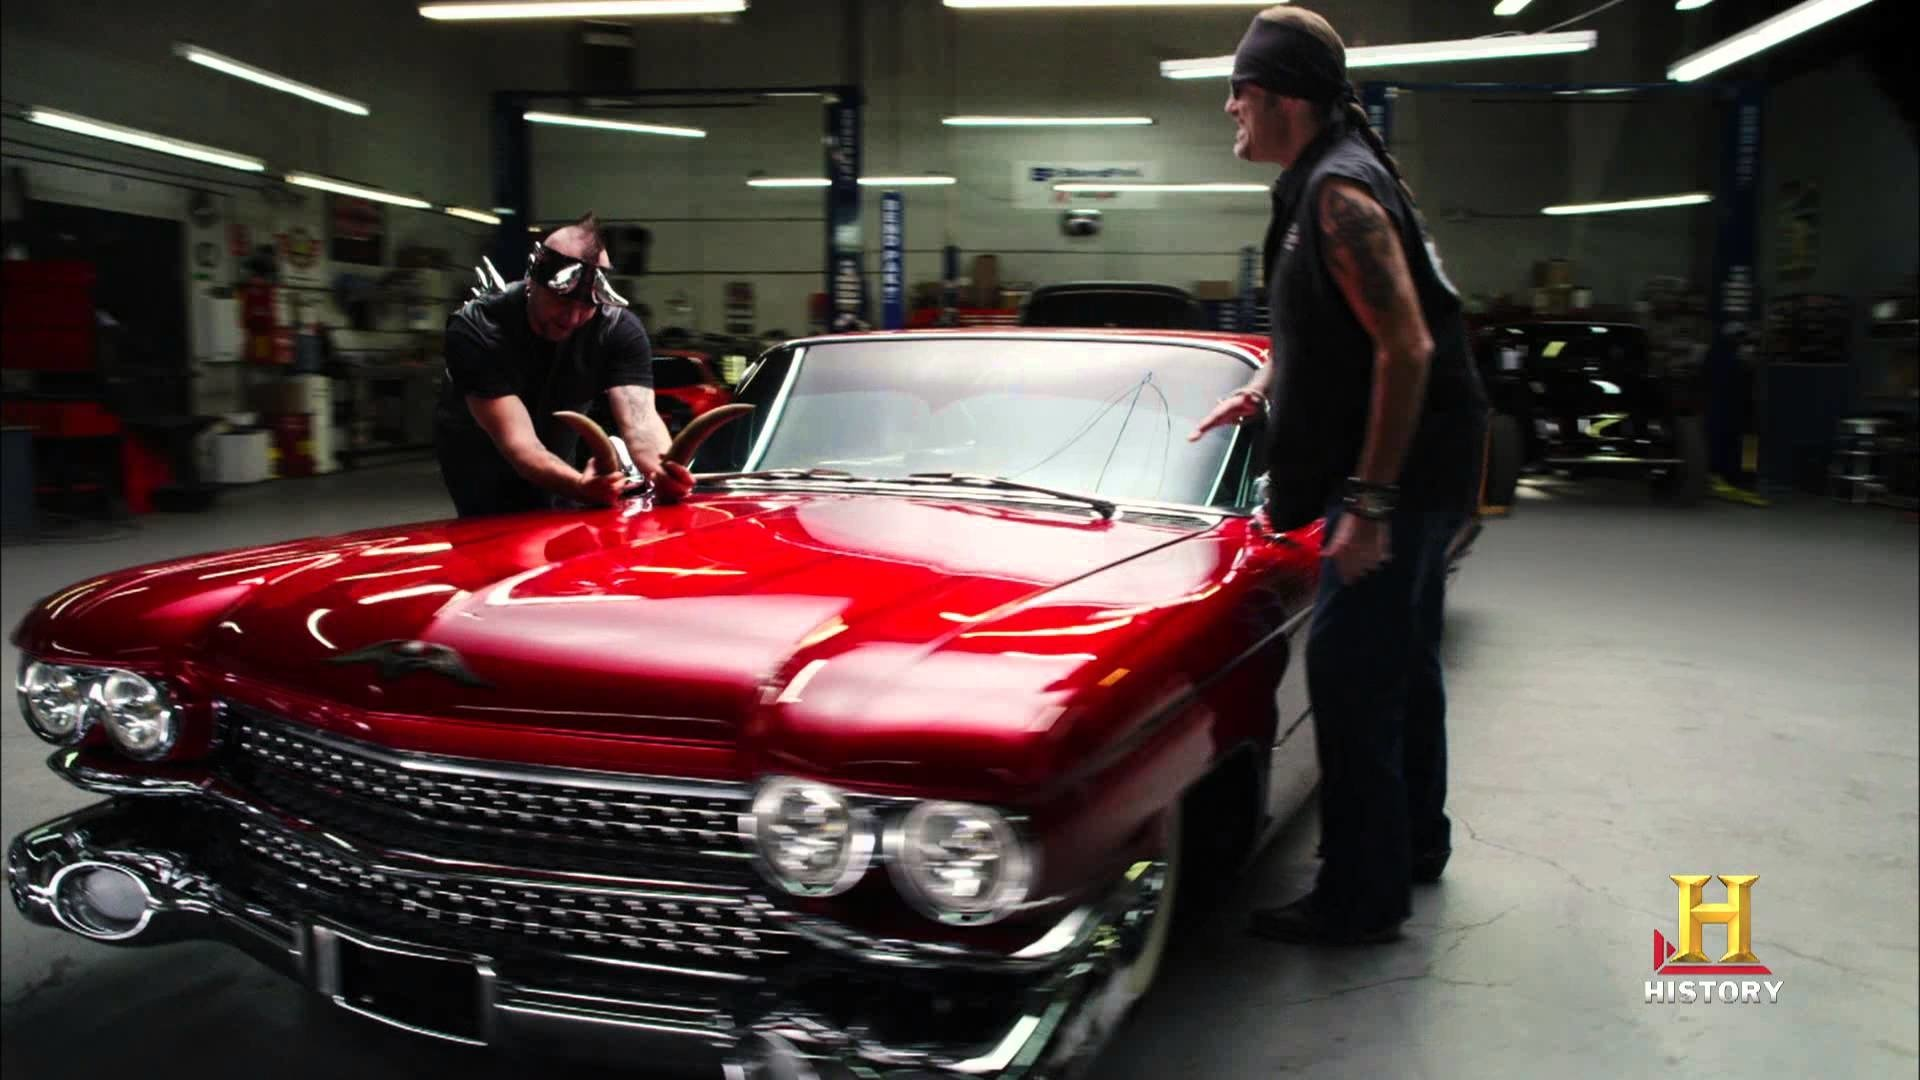 Custom Wallpaper Iphone 6 Counting Cars Full Hd Wallpaper And Background Image